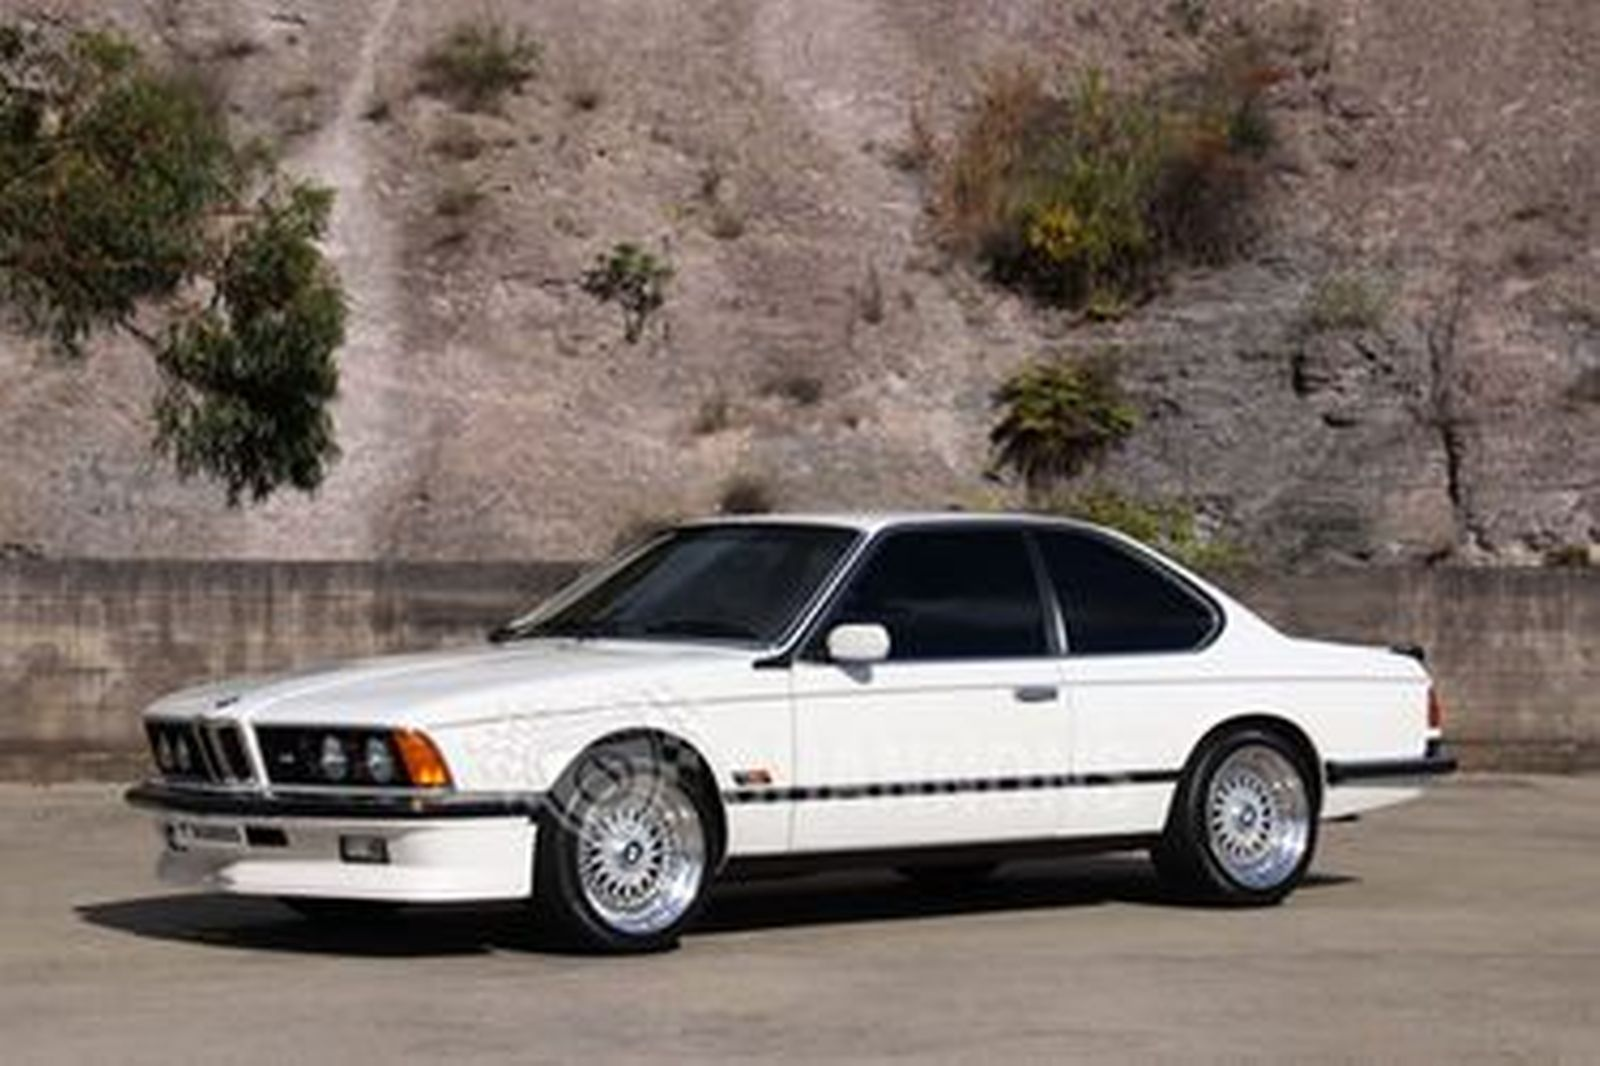 Sold: BMW M635 CSi Coupe Auctions - Lot 67 - Shannons